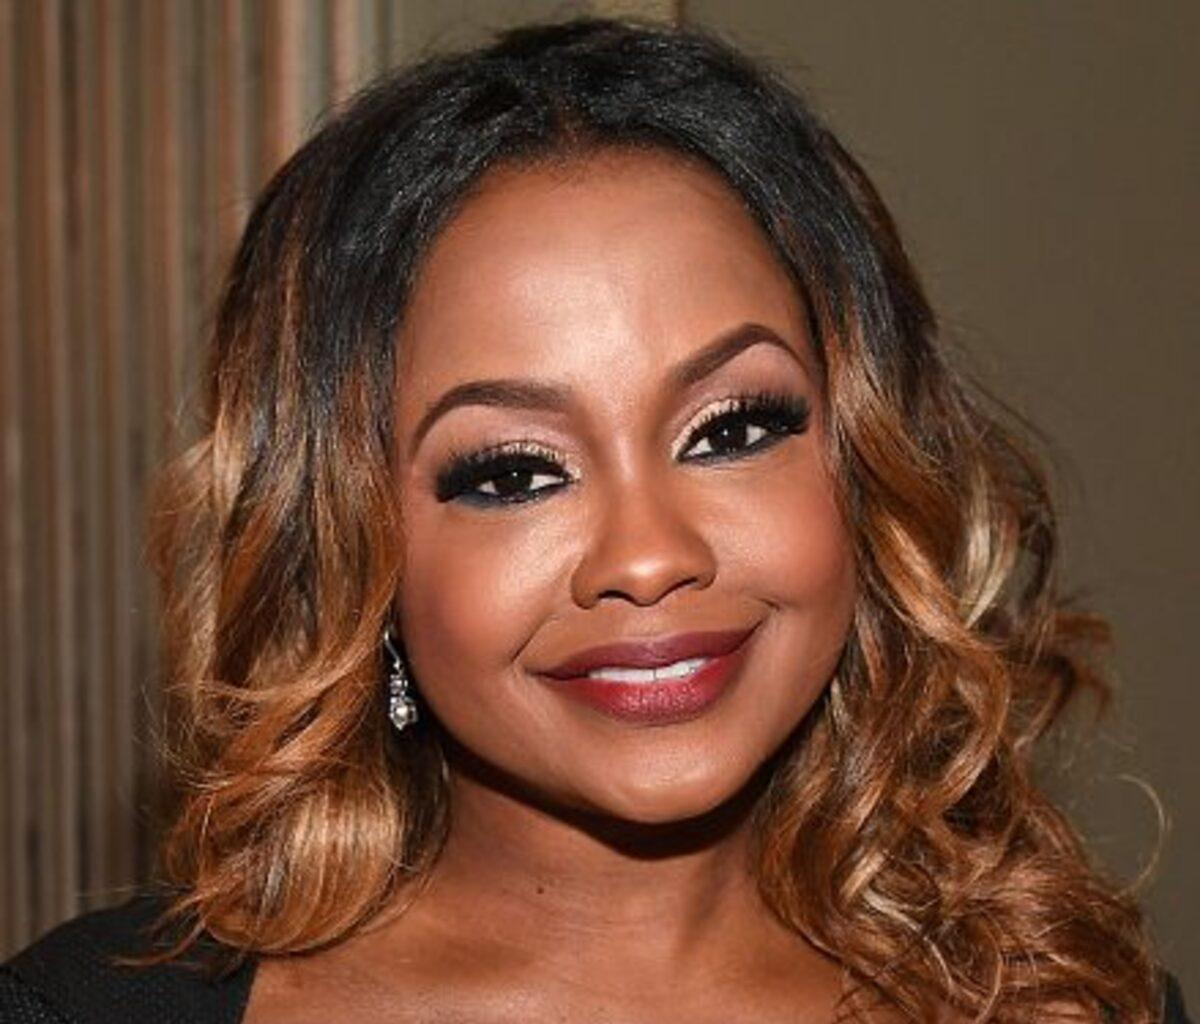 Phaedra Parks Is Proud Of Her Friend Who Ensures Justice For People